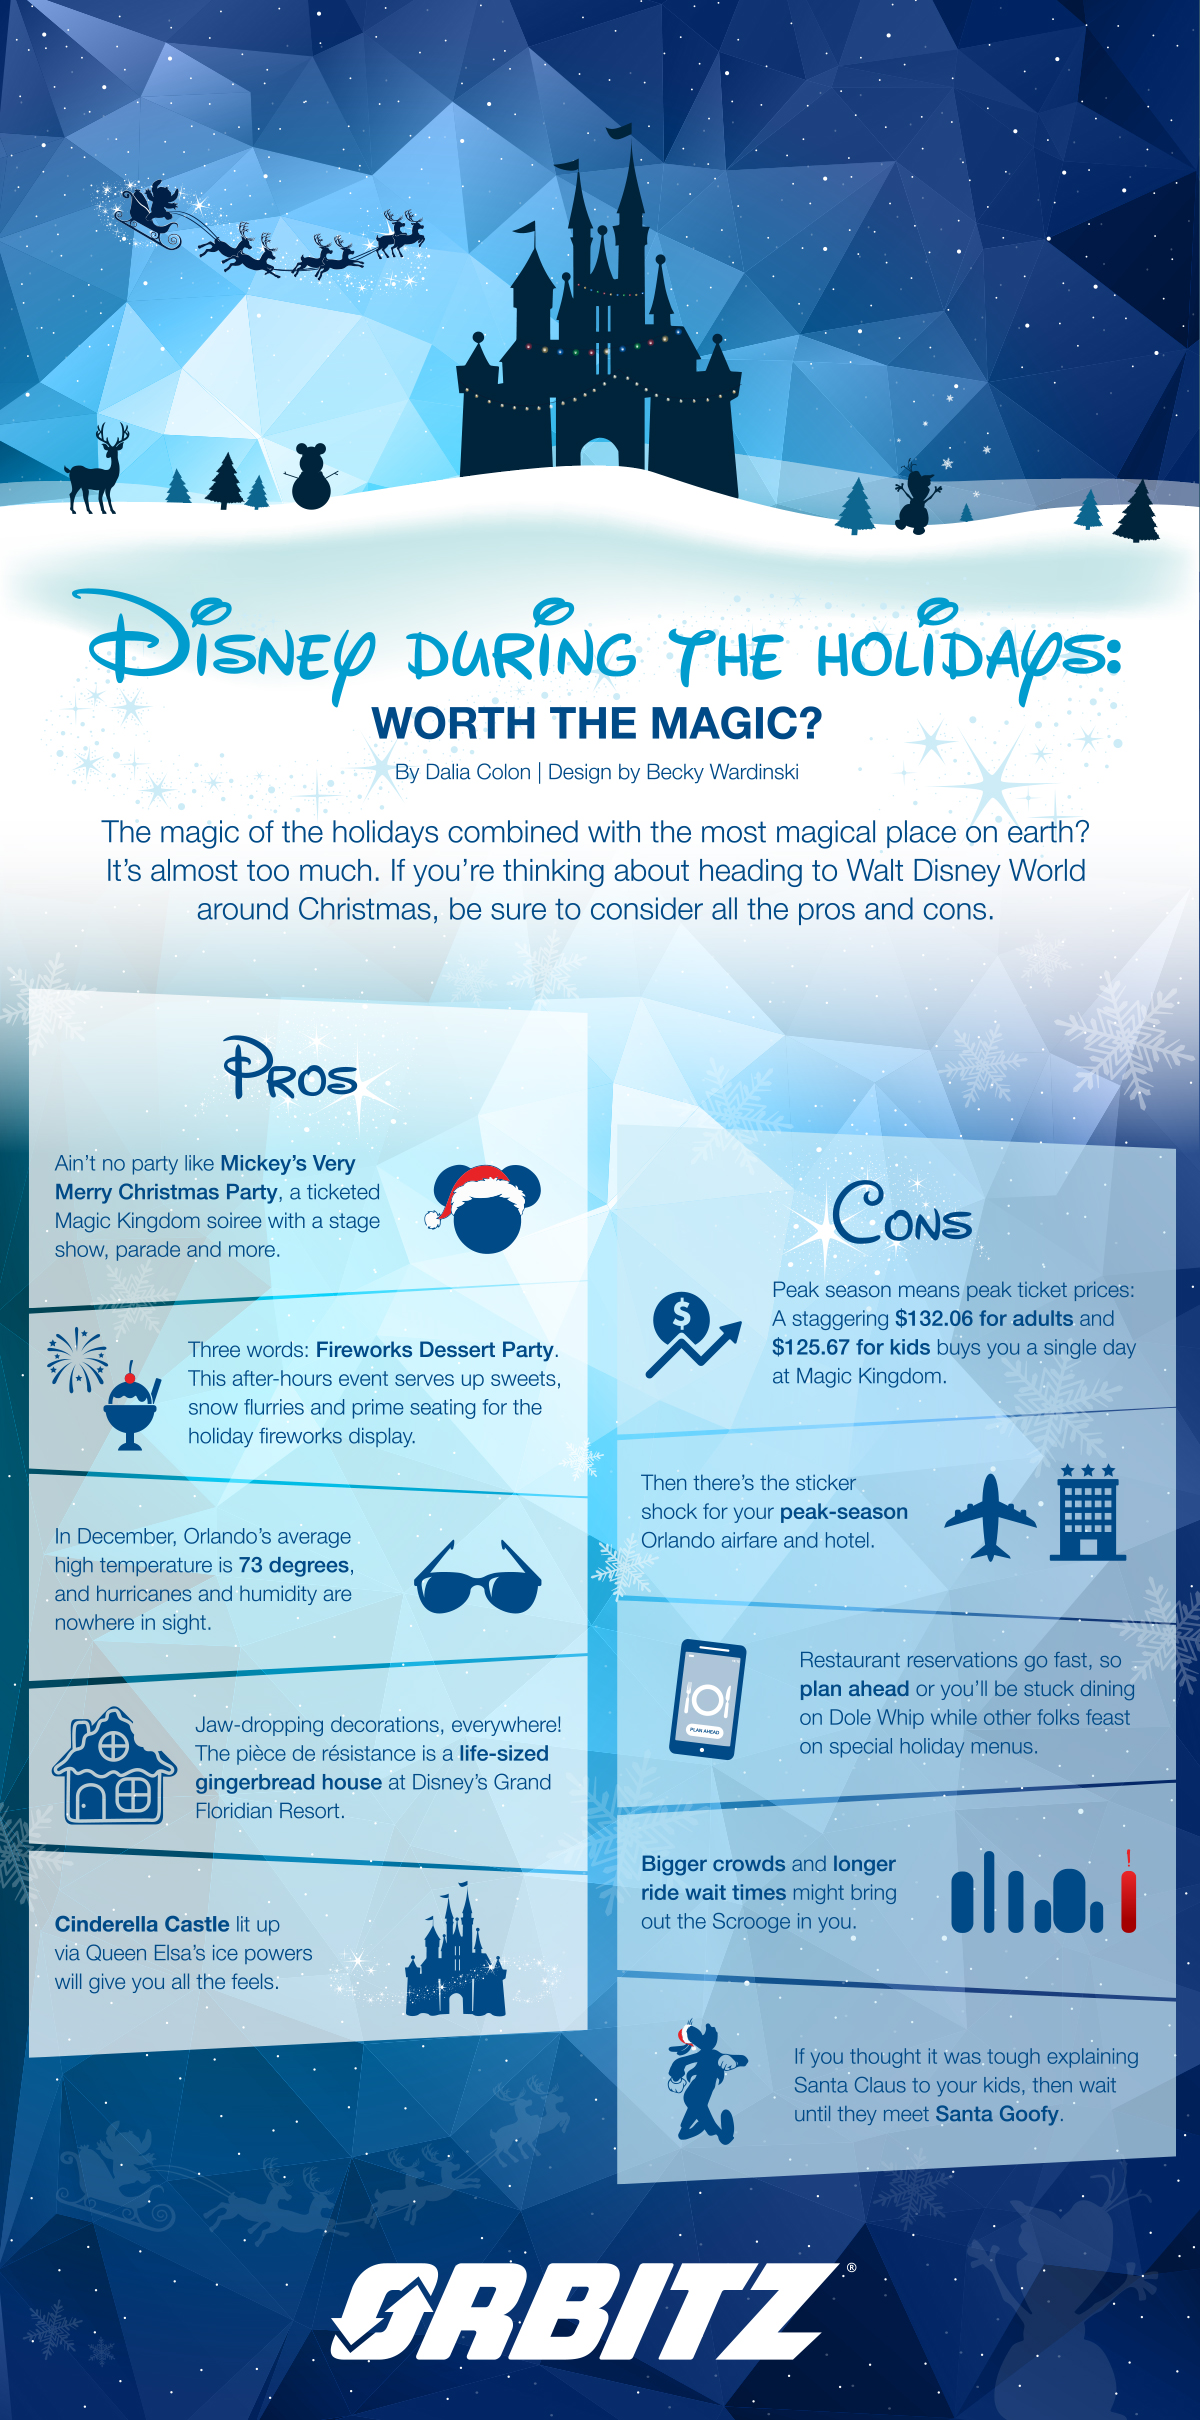 The pros and cons of Disney during the holidays